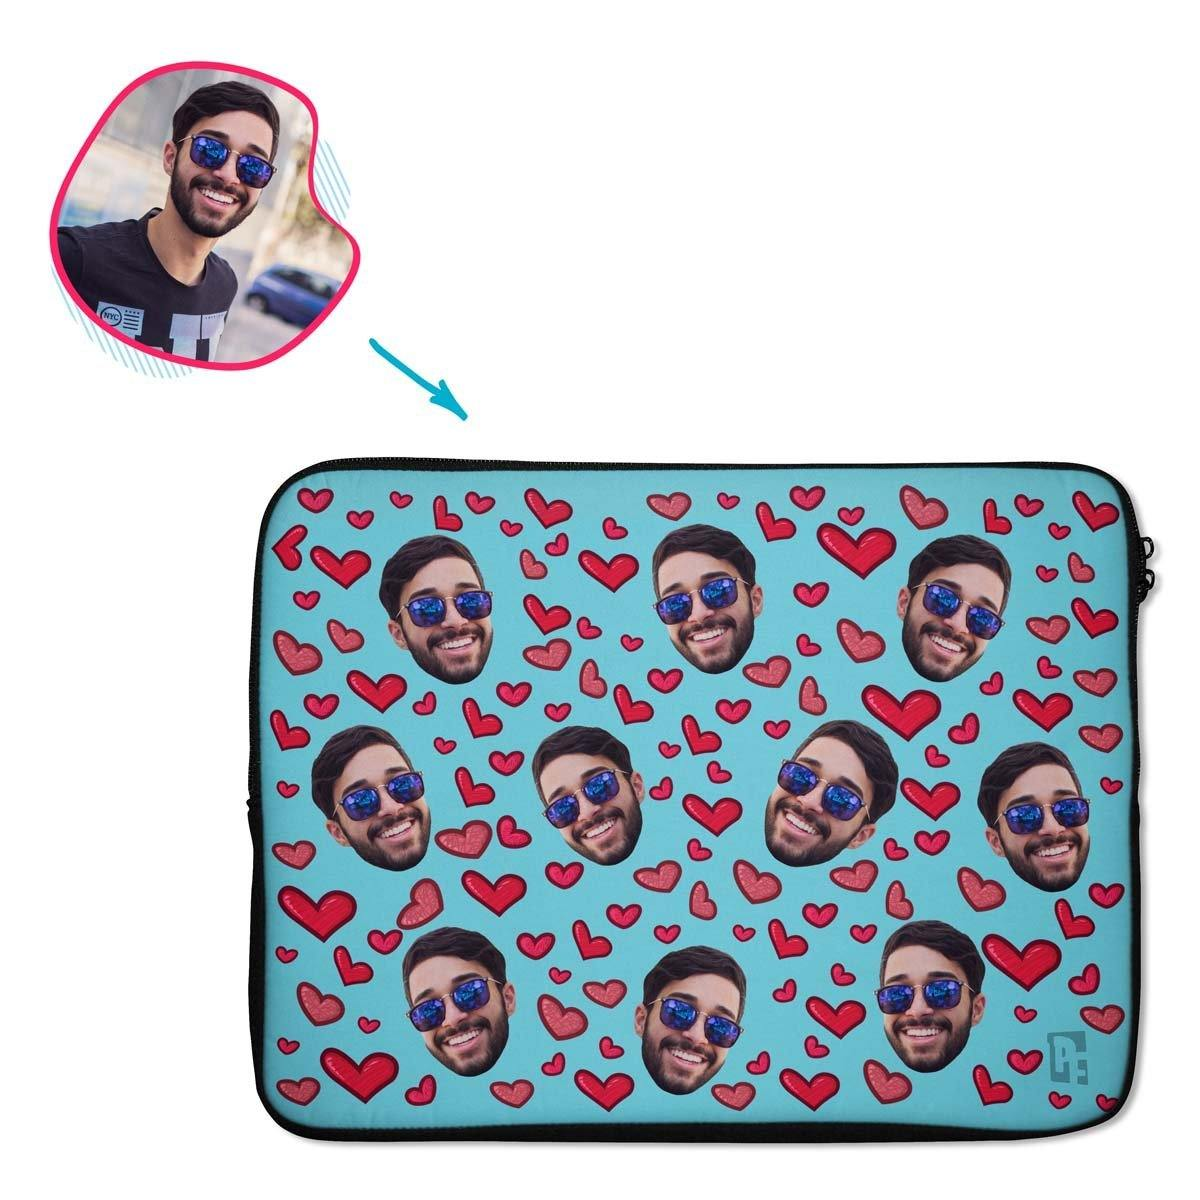 blue Heart laptop sleeve personalized with photo of face printed on them